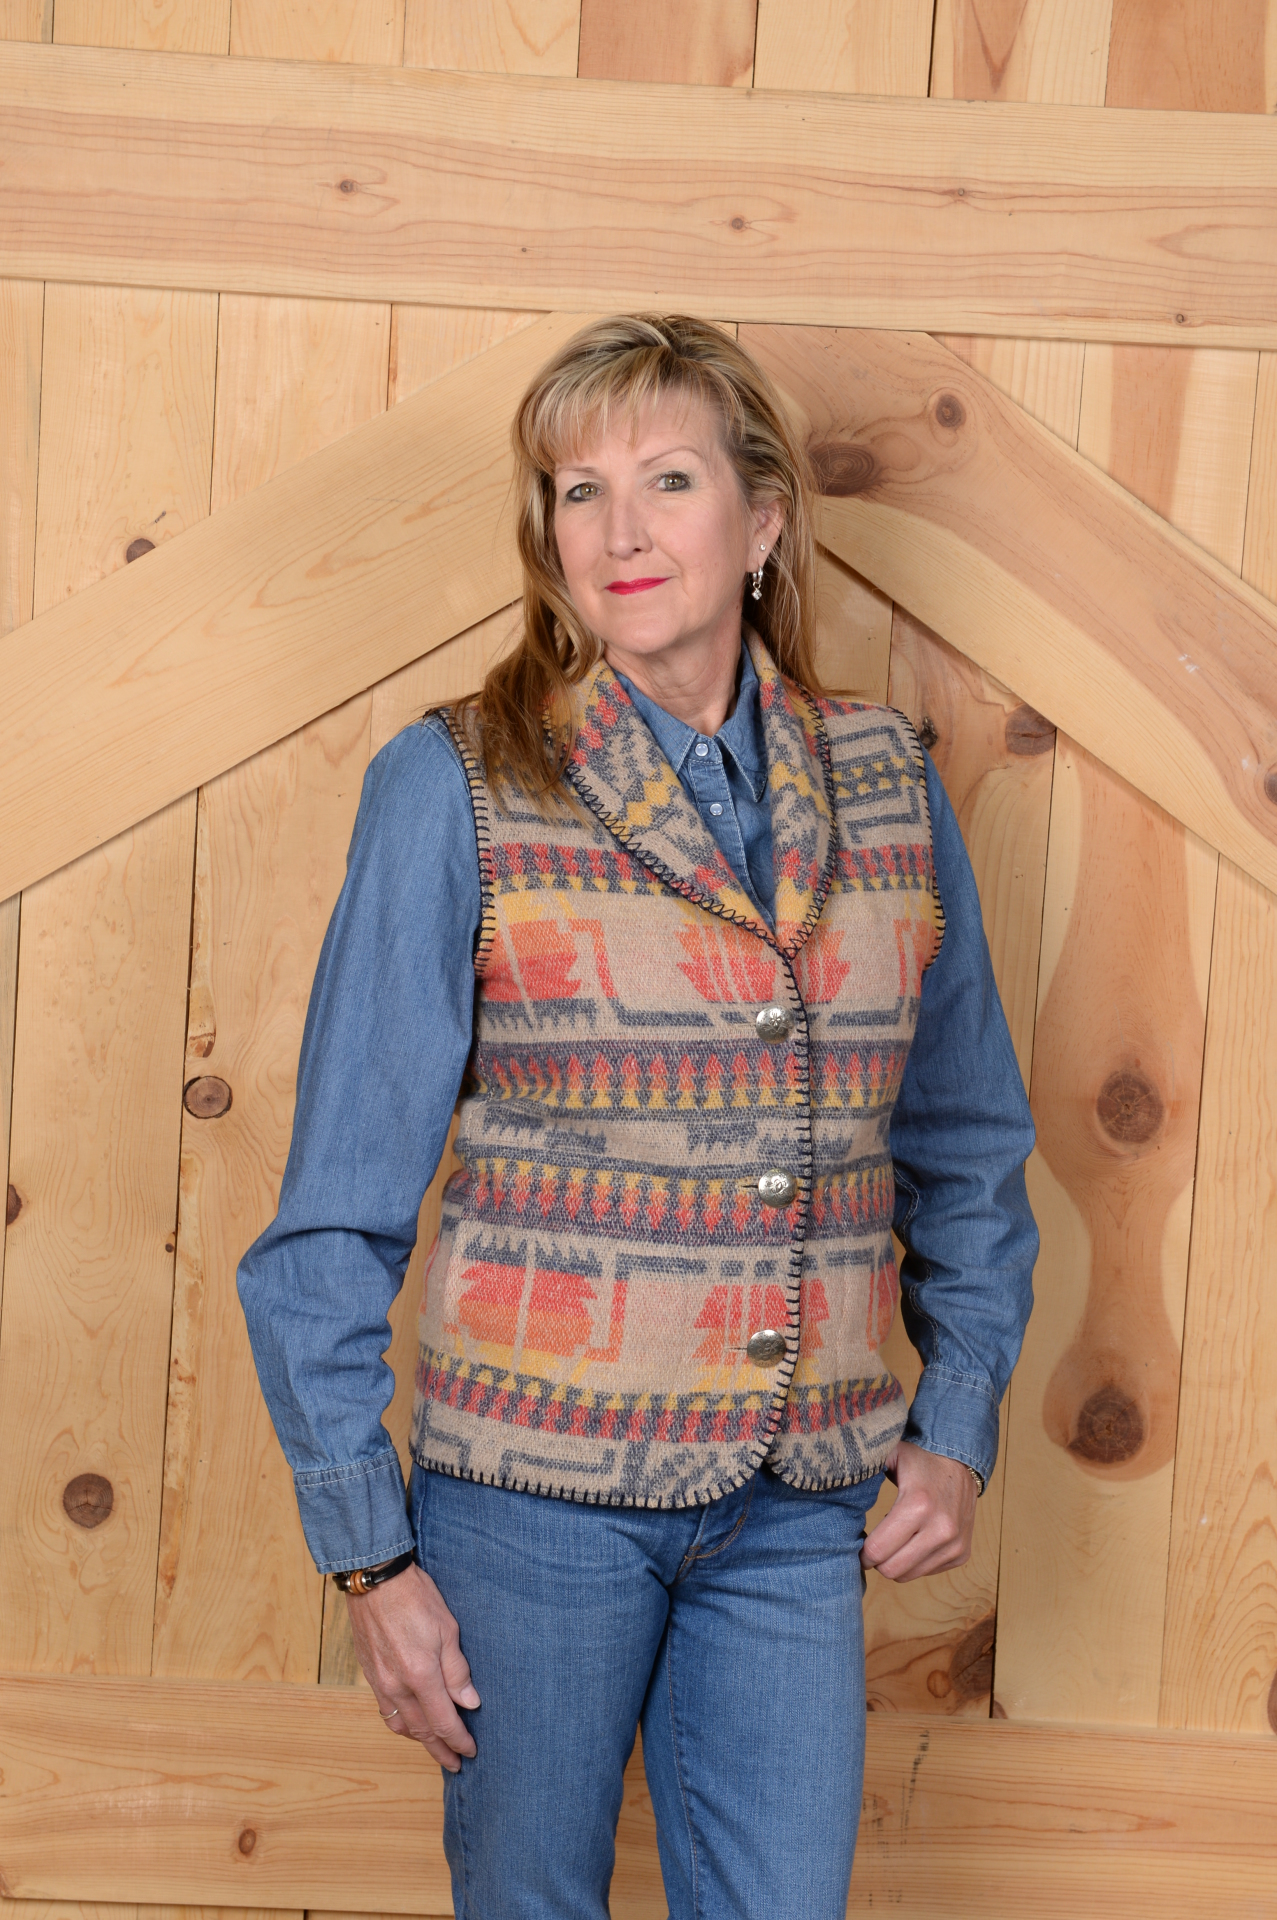 #130IC - INDIAN CHIEF SHAWL VEST - $99.95                    SALE $49.95 -- S-L-XL-2X